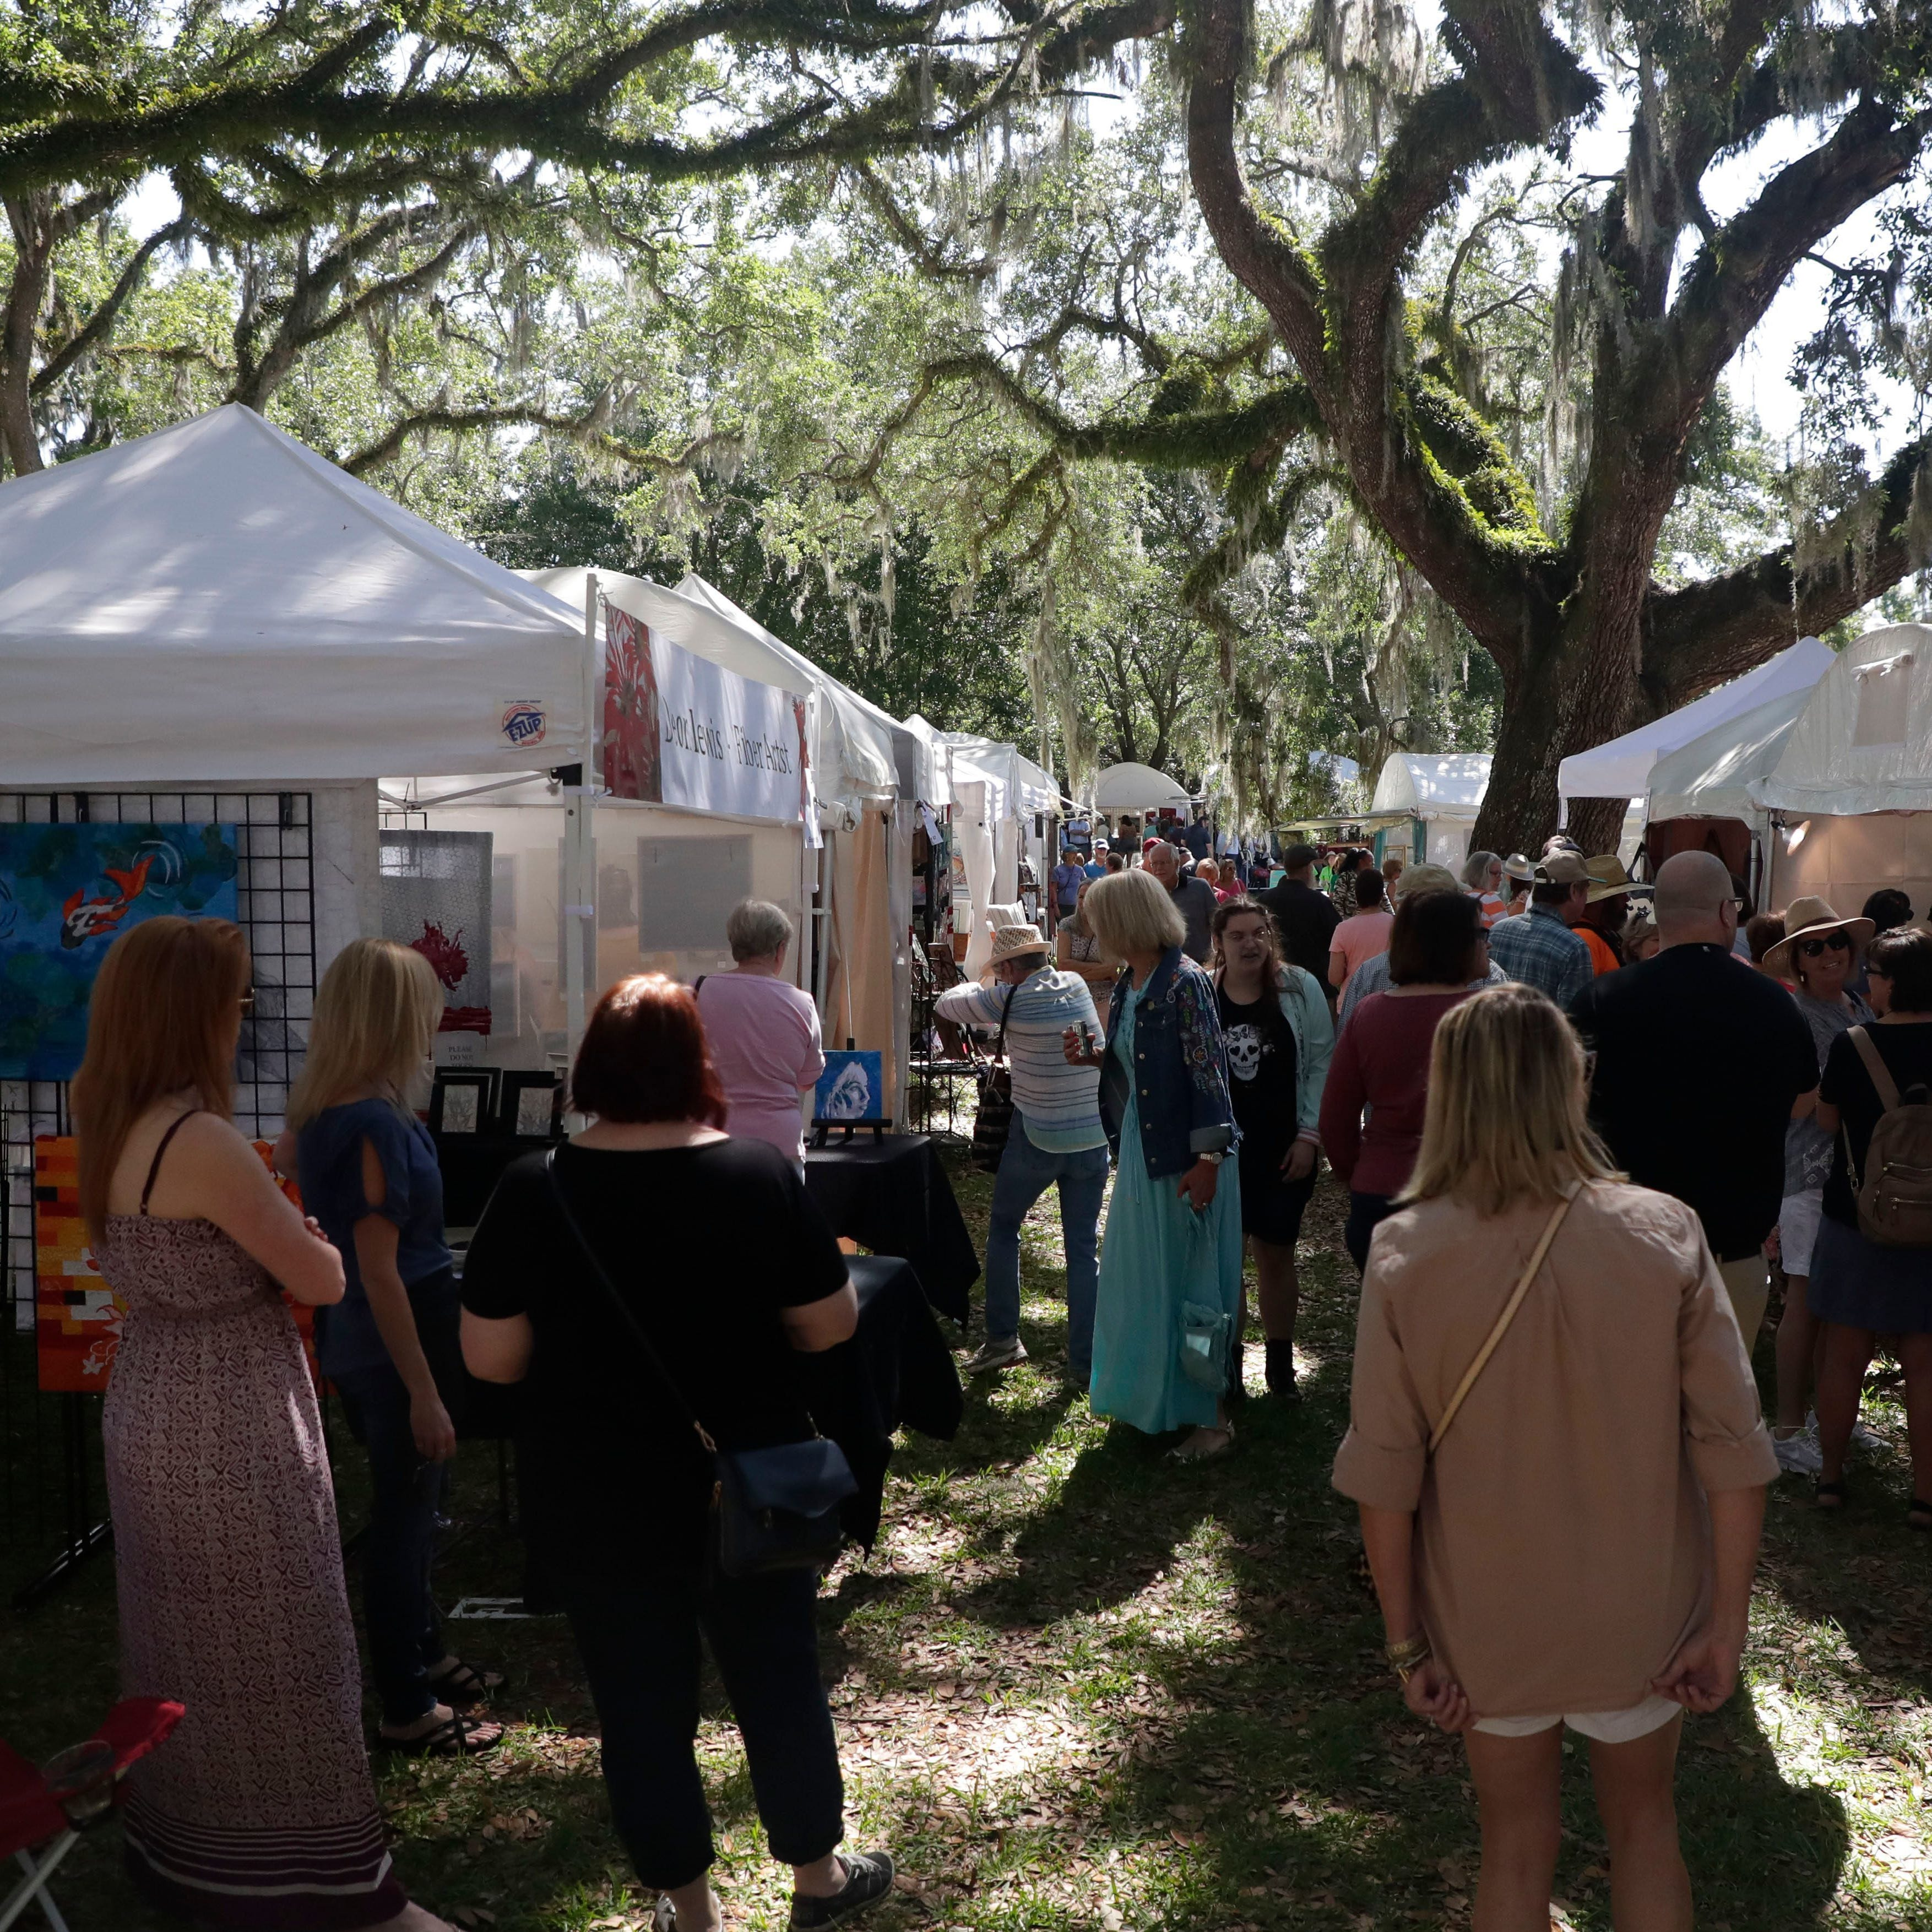 19th annual Chain of Parks Art Festival takes over Downtown Tallahassee